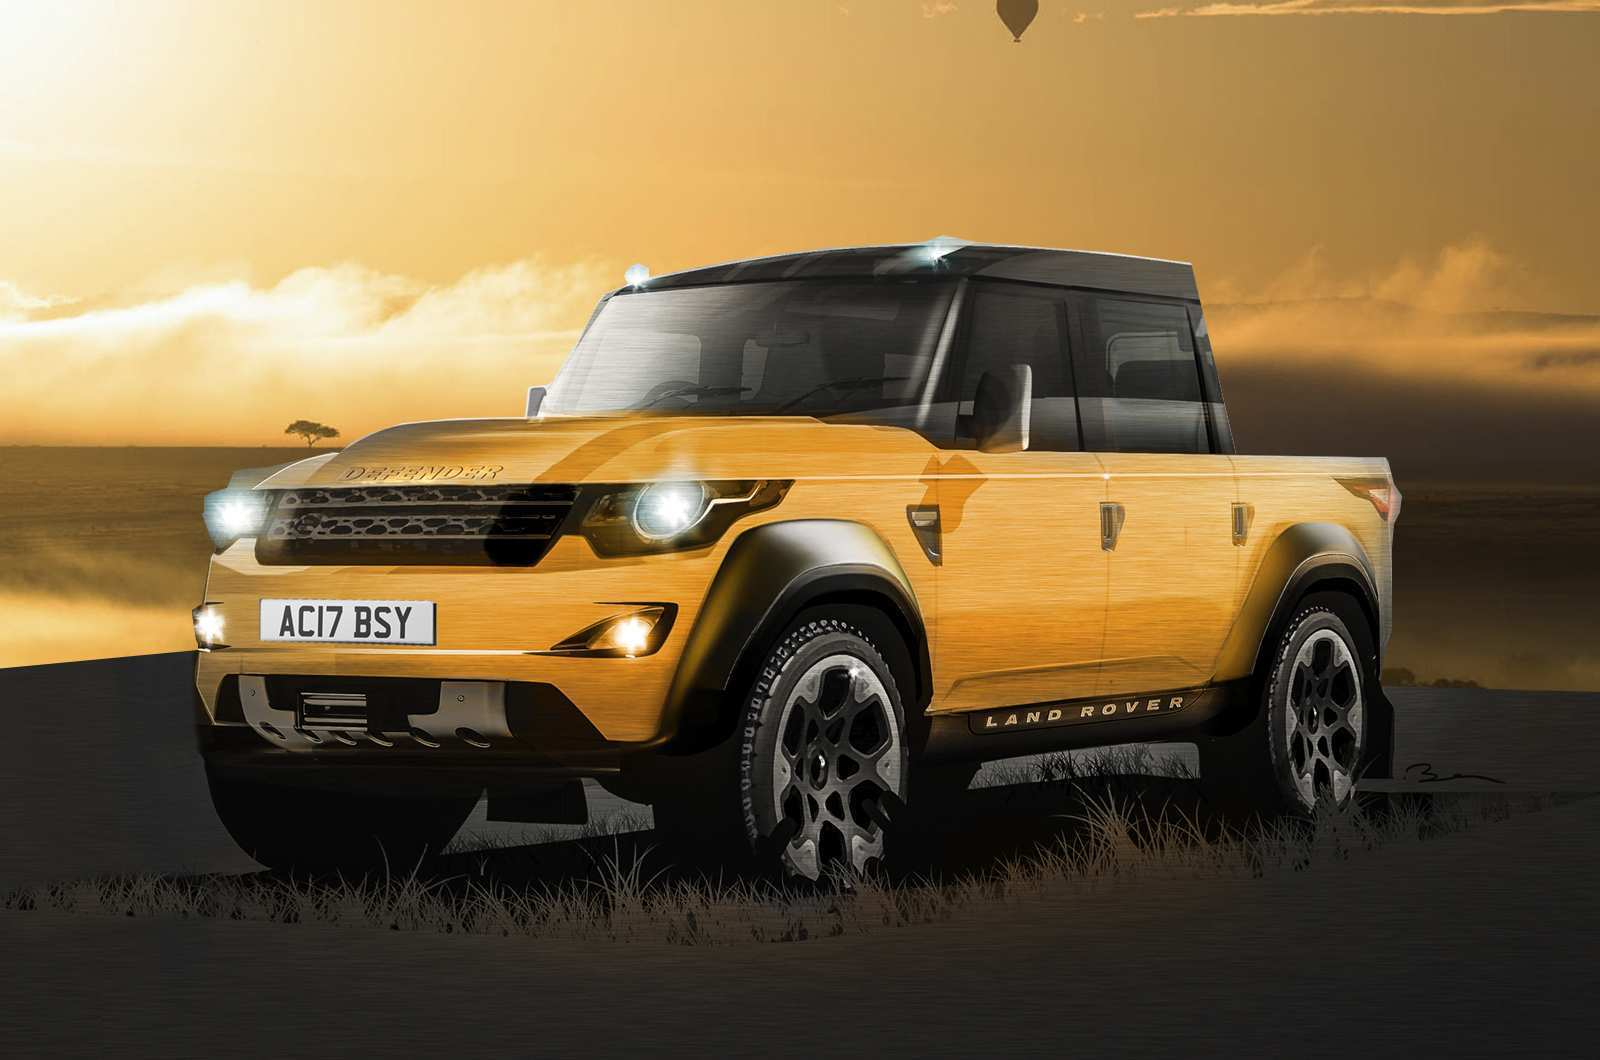 90 Concept of Land Rover Pickup 2019 Release Date with Land Rover Pickup 2019